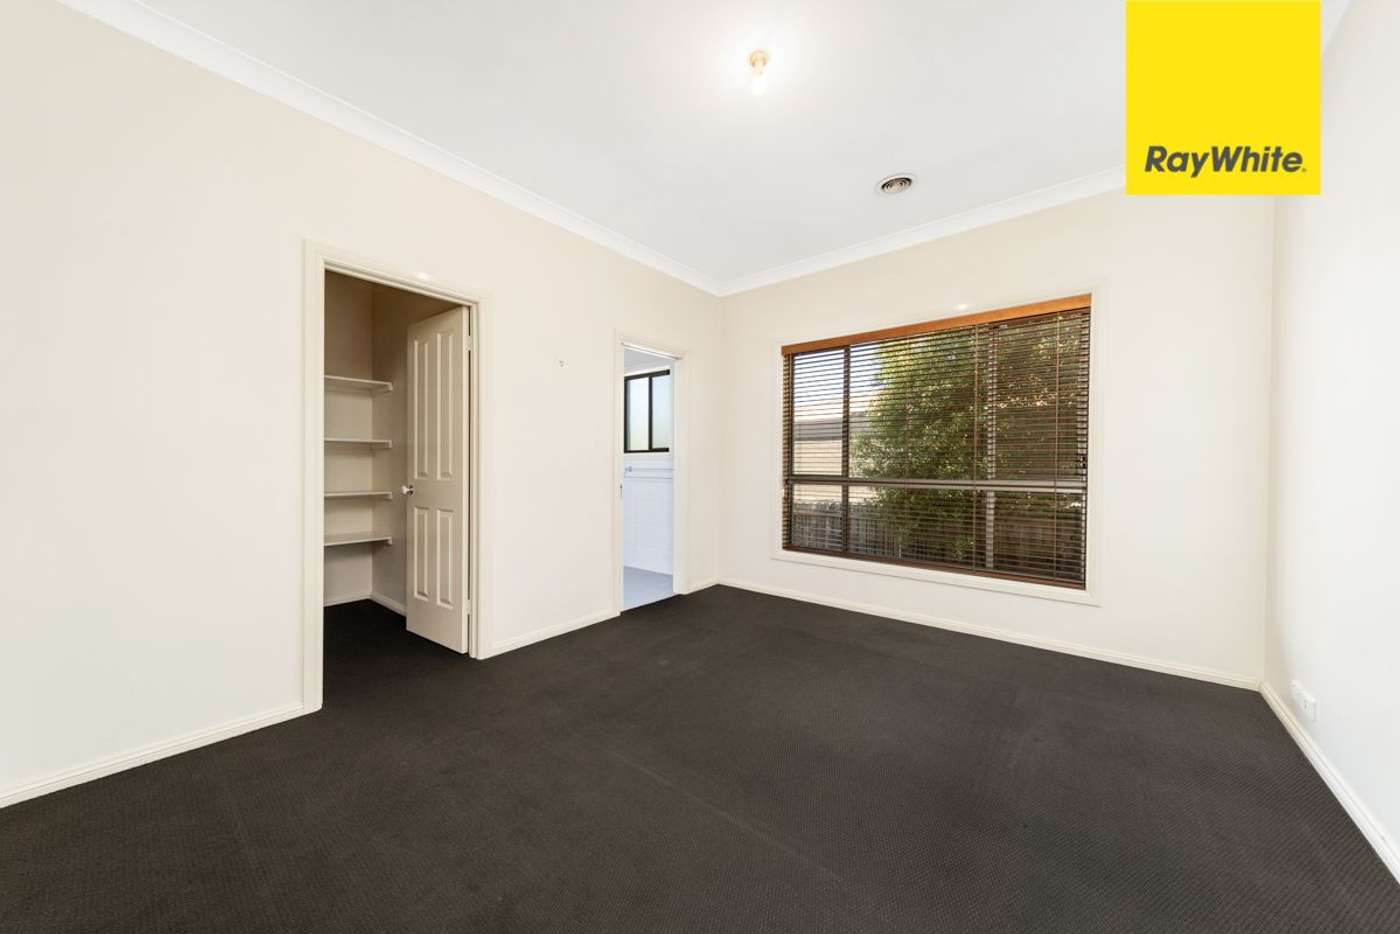 Seventh view of Homely townhouse listing, 18/12 Daley Crescent, Fraser ACT 2615